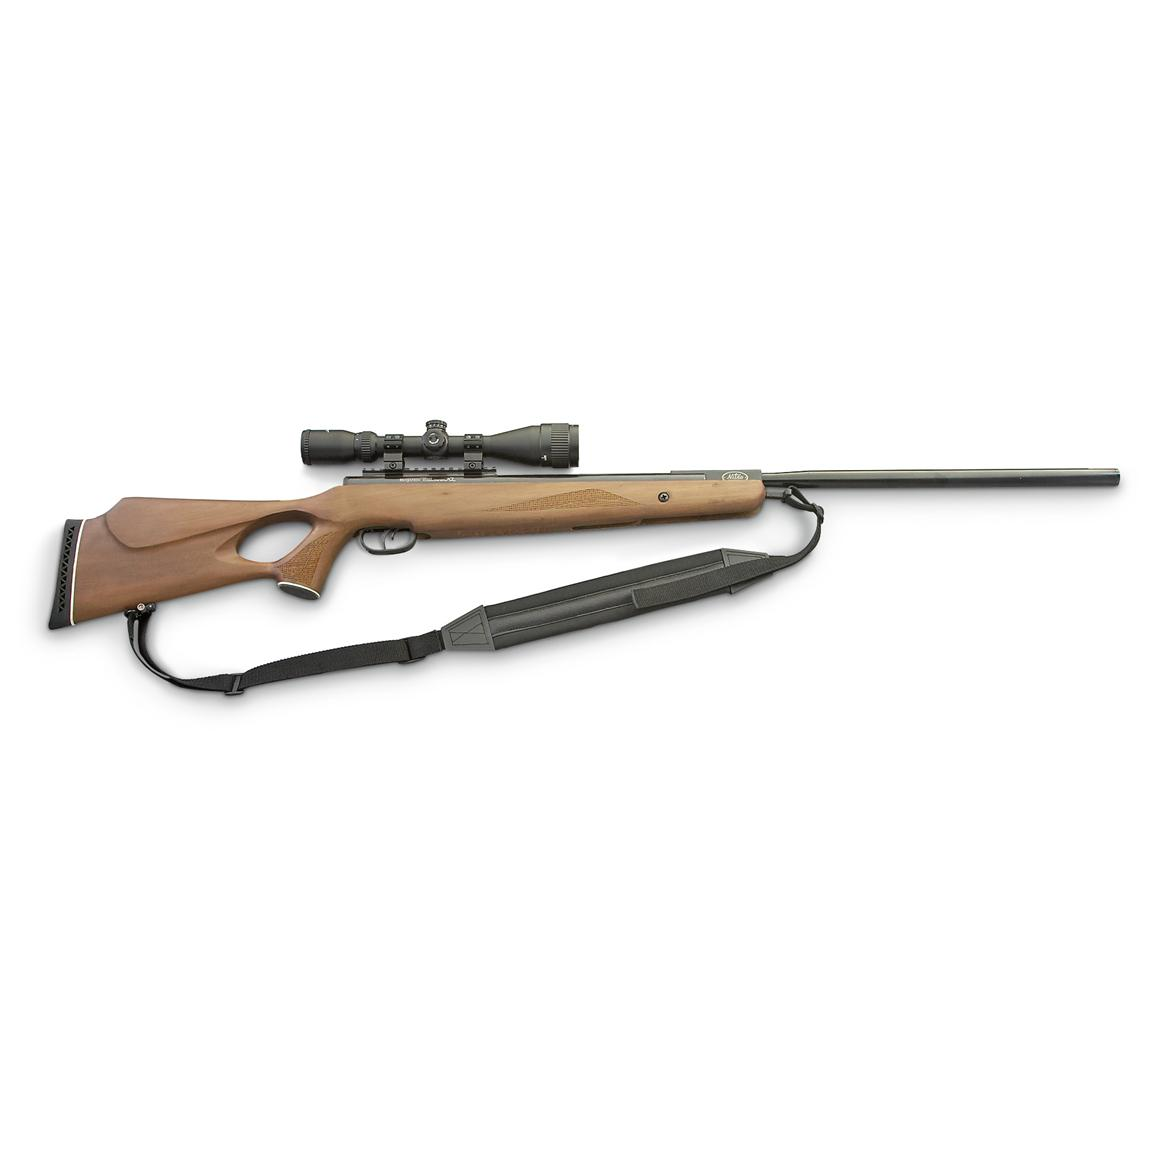 Benjamin® Trail Nitro Piston® XL1100 .22 cal. Air Rifle with Scope • Sling not included.